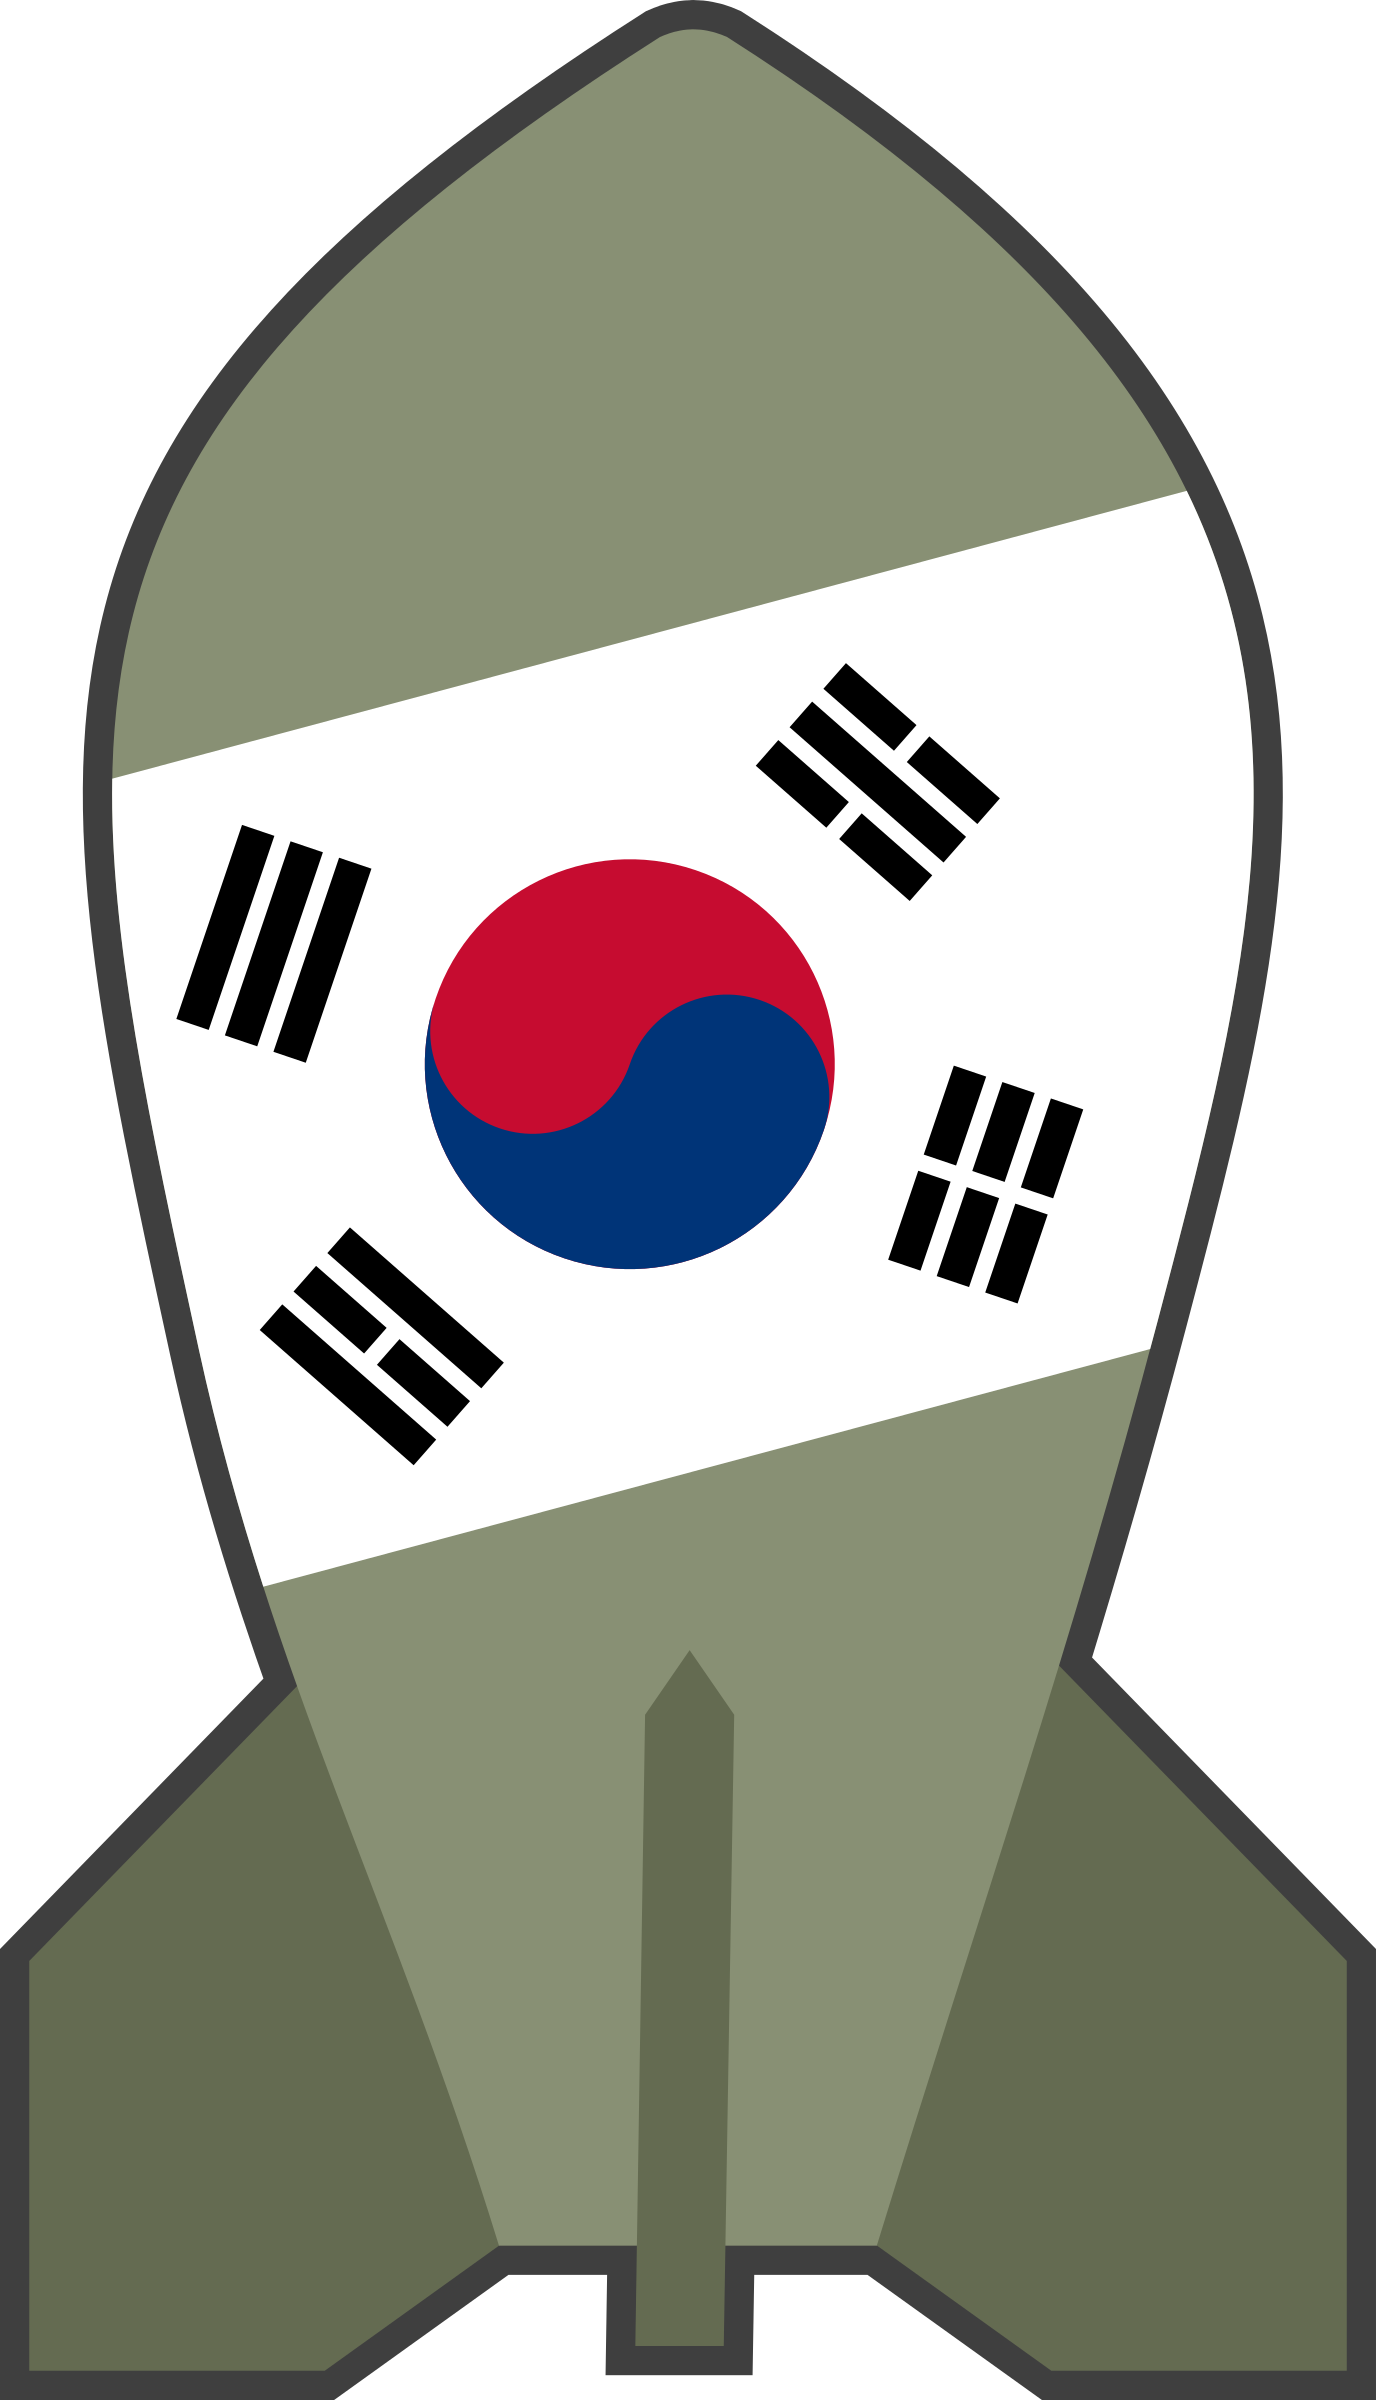 South Korean Bomb by qubodup